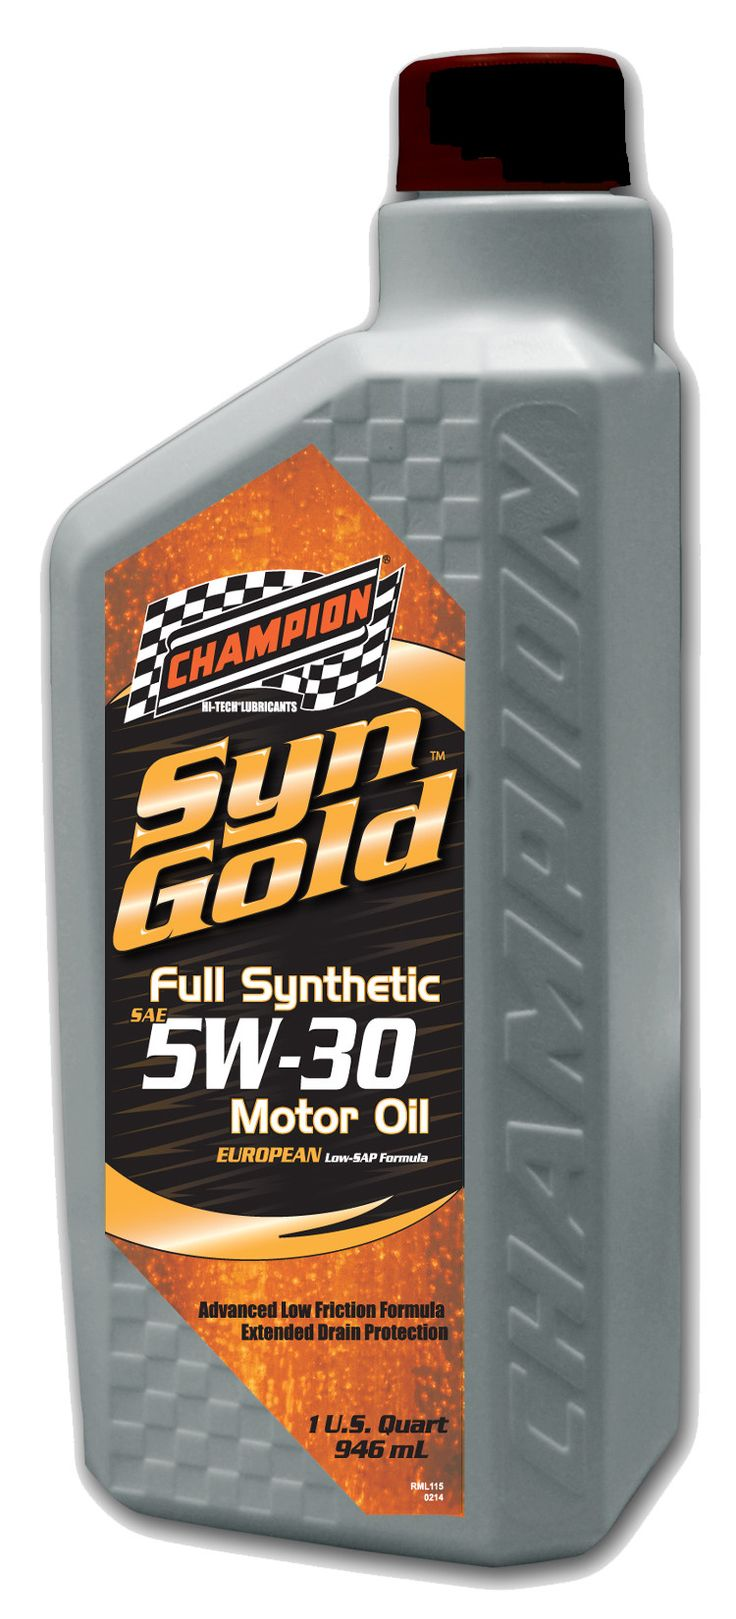 CHAMPION RACING OIL EUROPEAN SYNGOLD FULL SYNTHETIC 5W-30 (6 QUARTS) SAPS 4436H